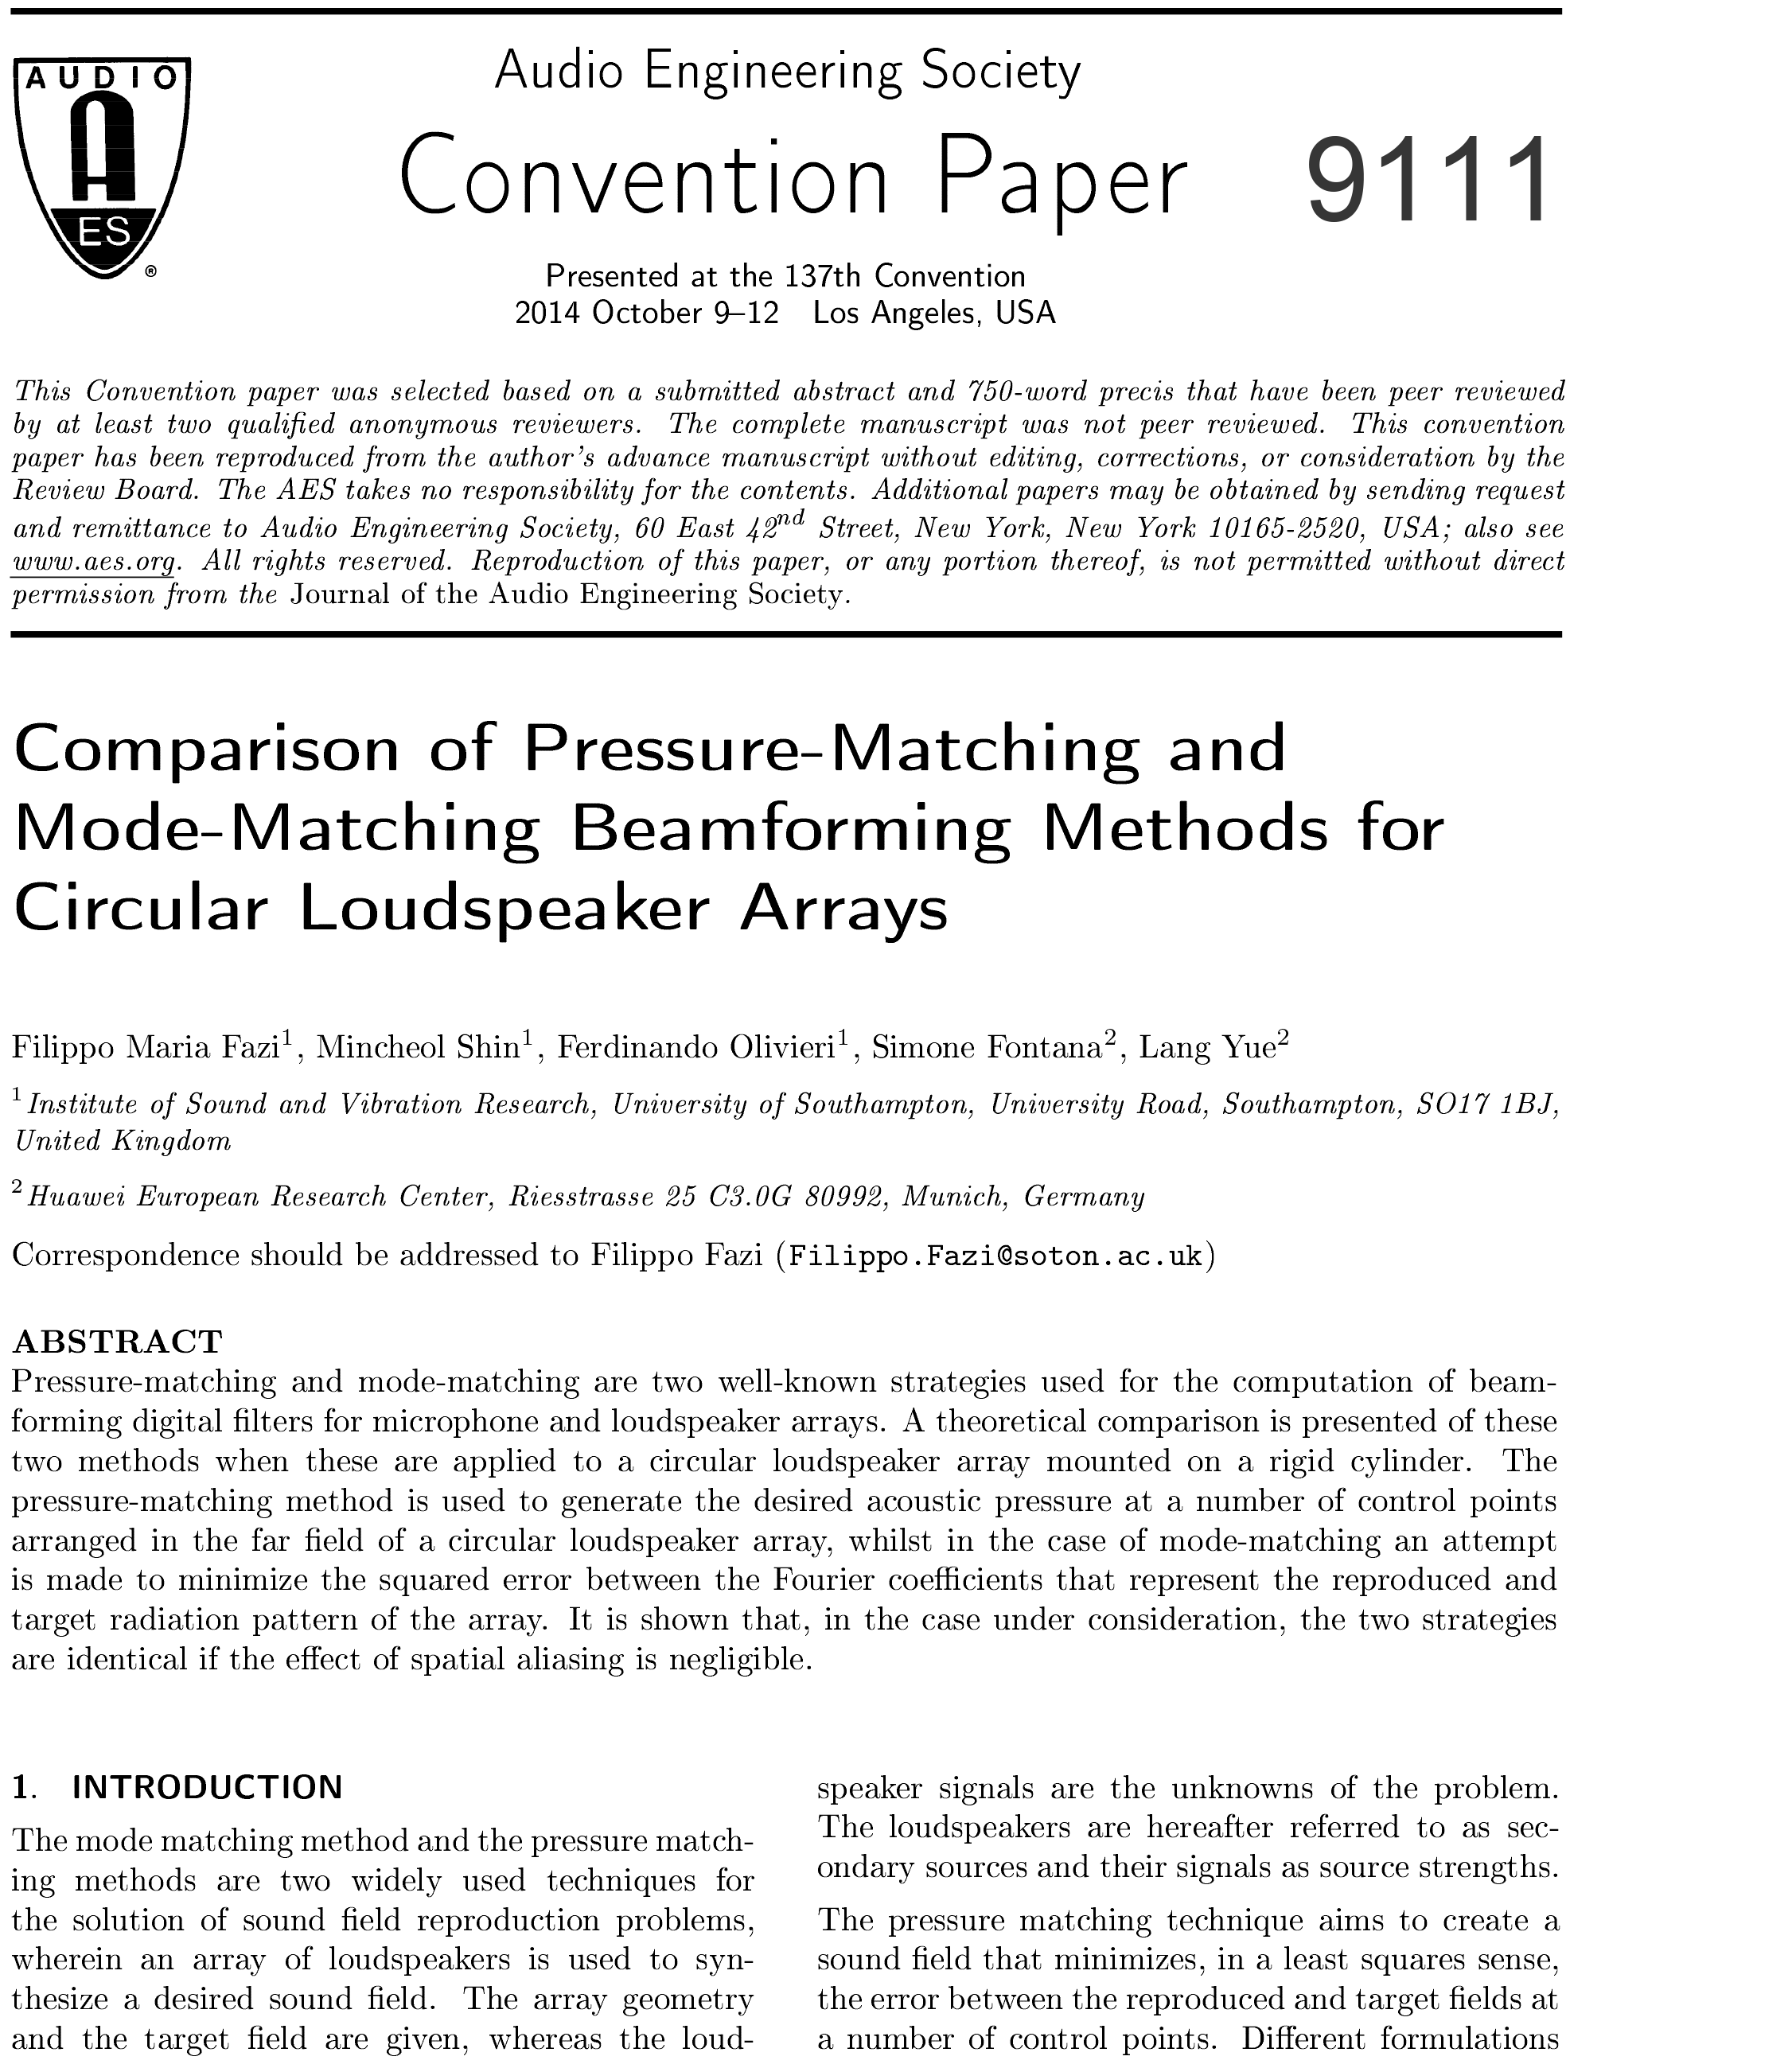 AES E-Library » Comparison of Pressure-Matching and Mode